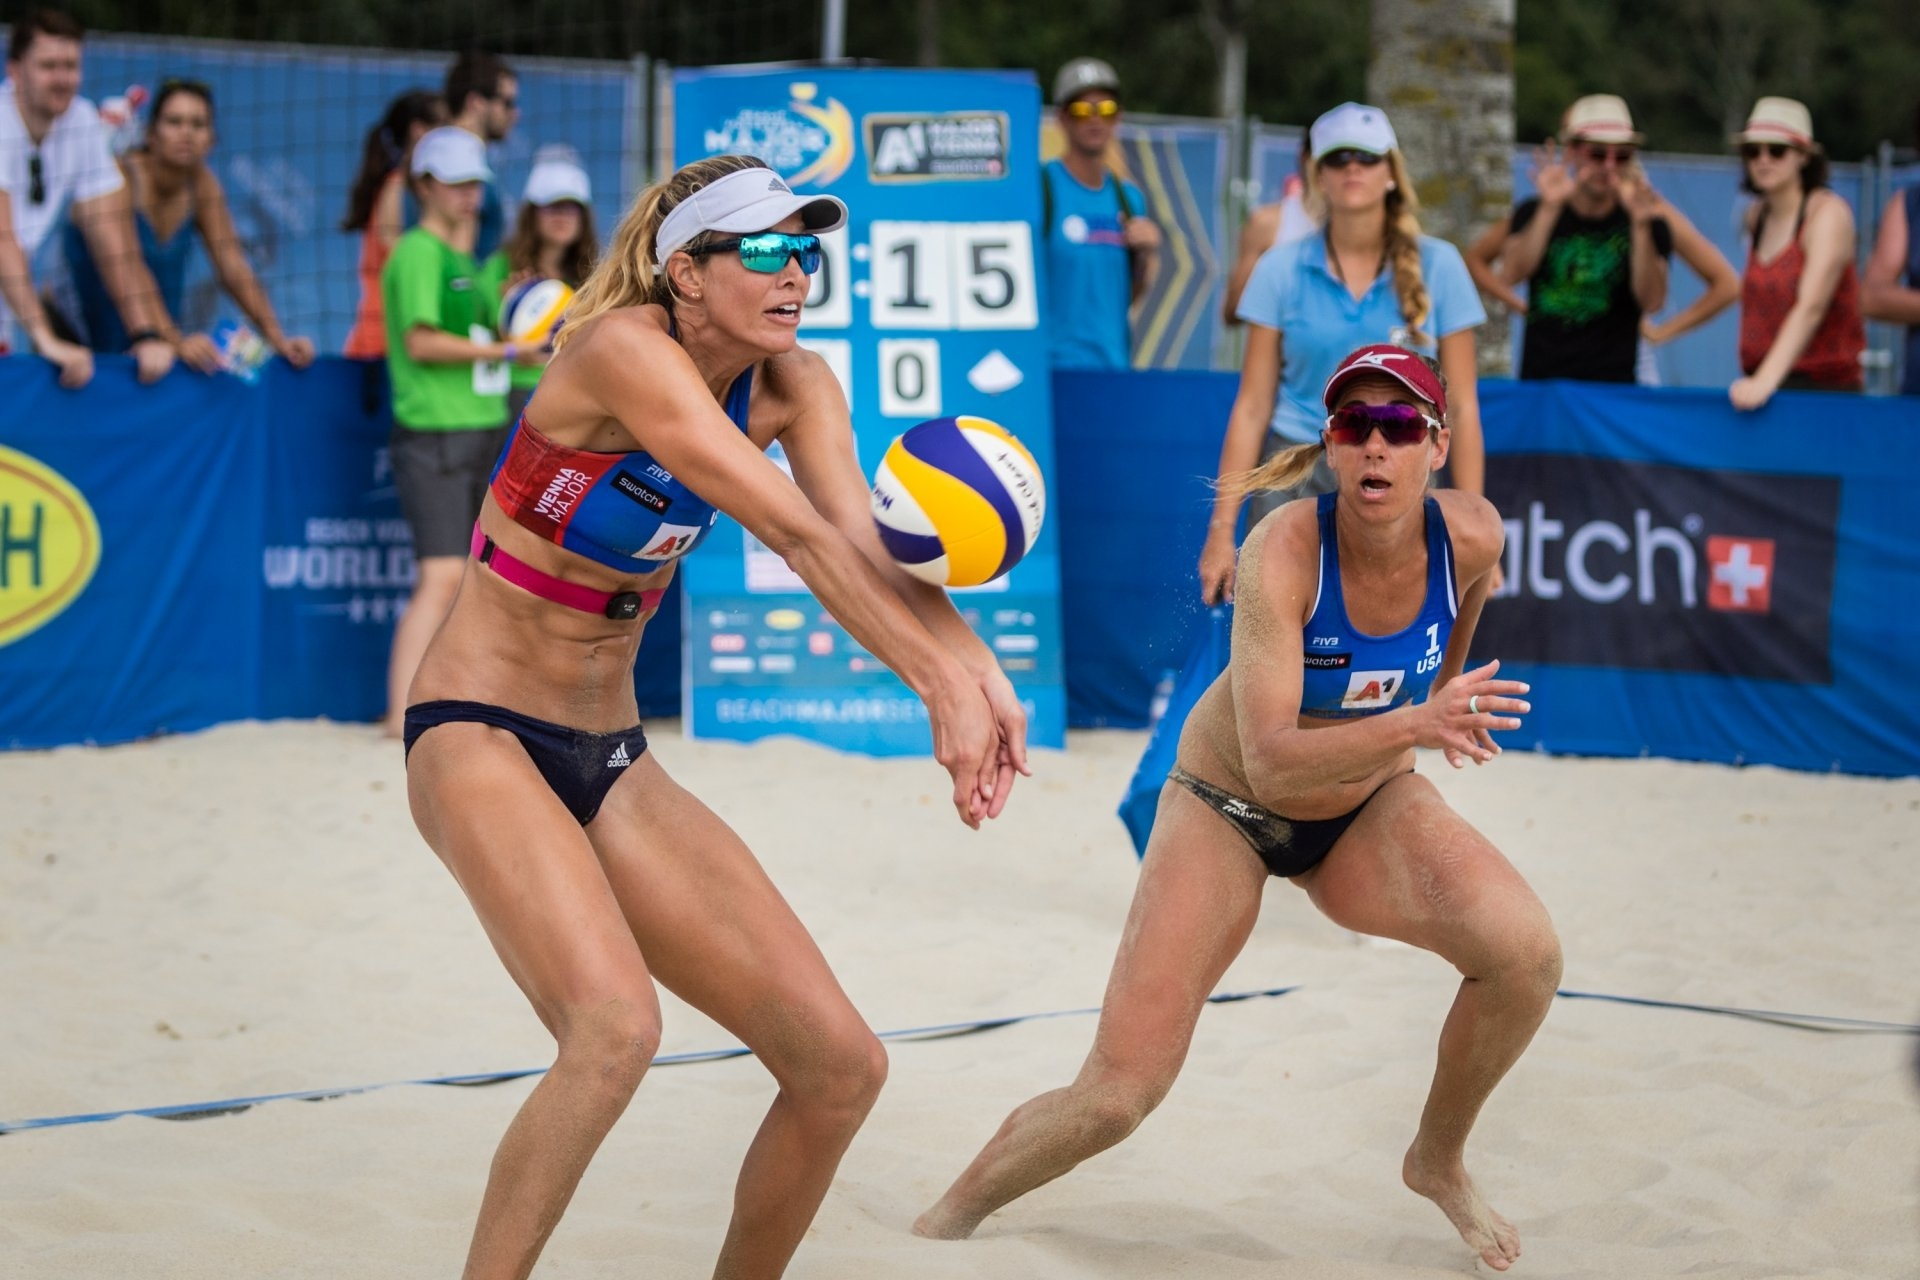 'The A-Team' of Alix Klineman and April Ross will represent the United States in Boca Chica